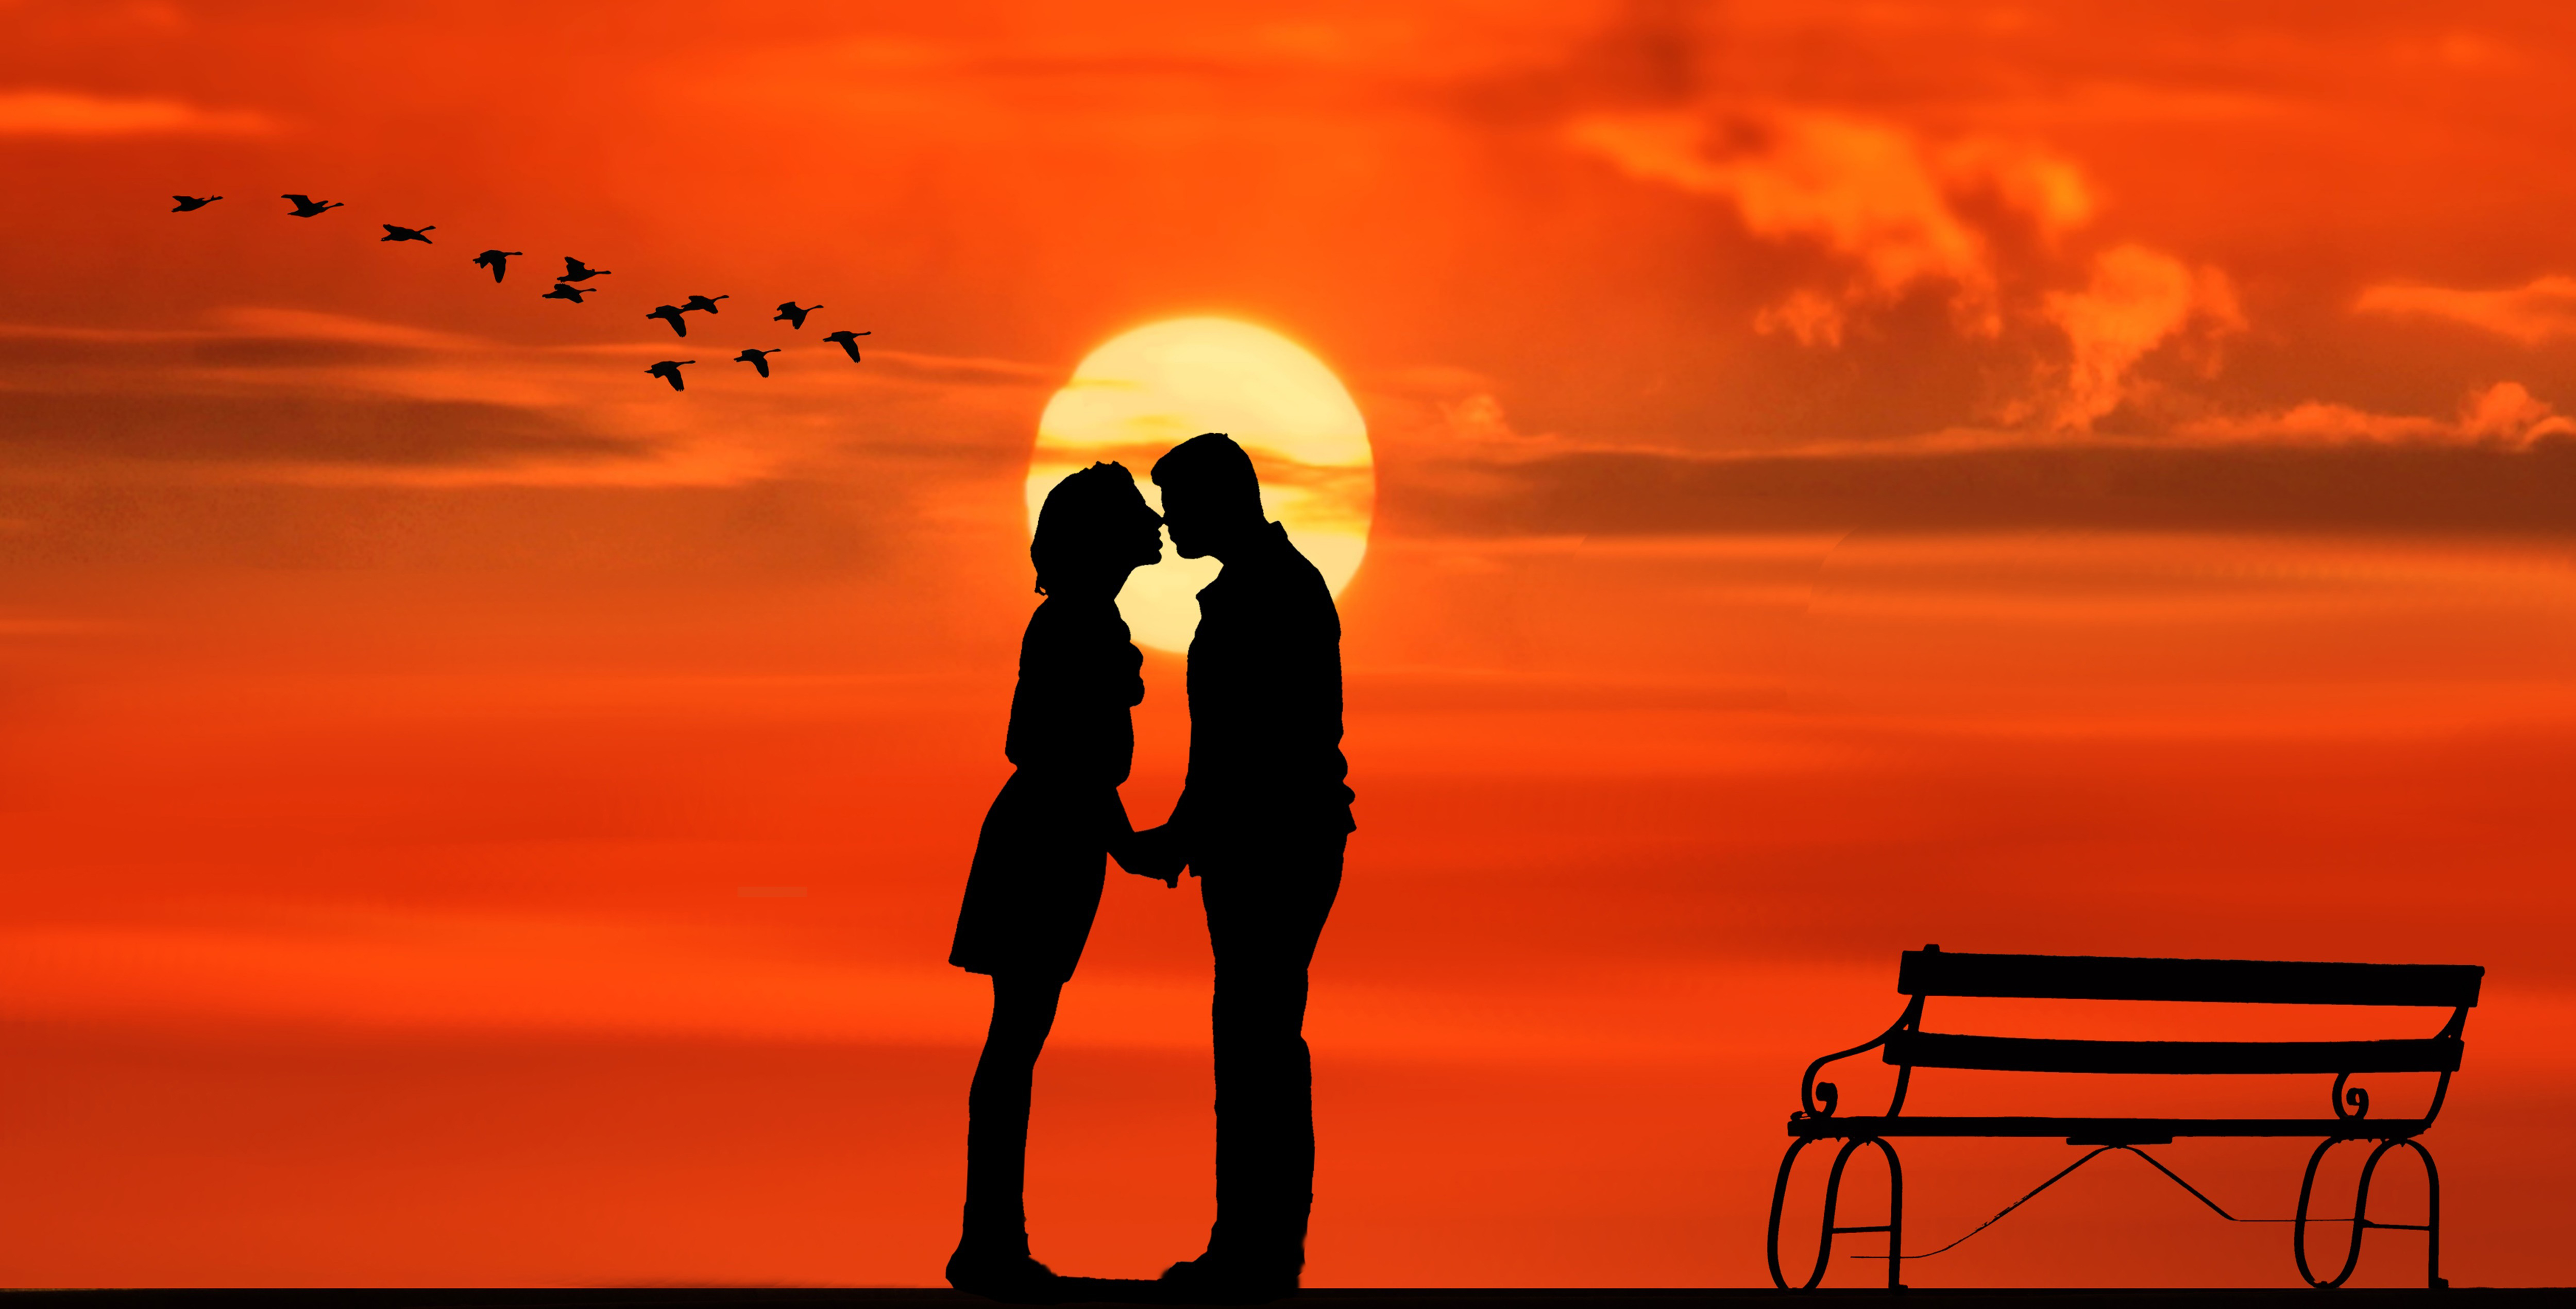 sunset, pair, lovers, kiss, bank